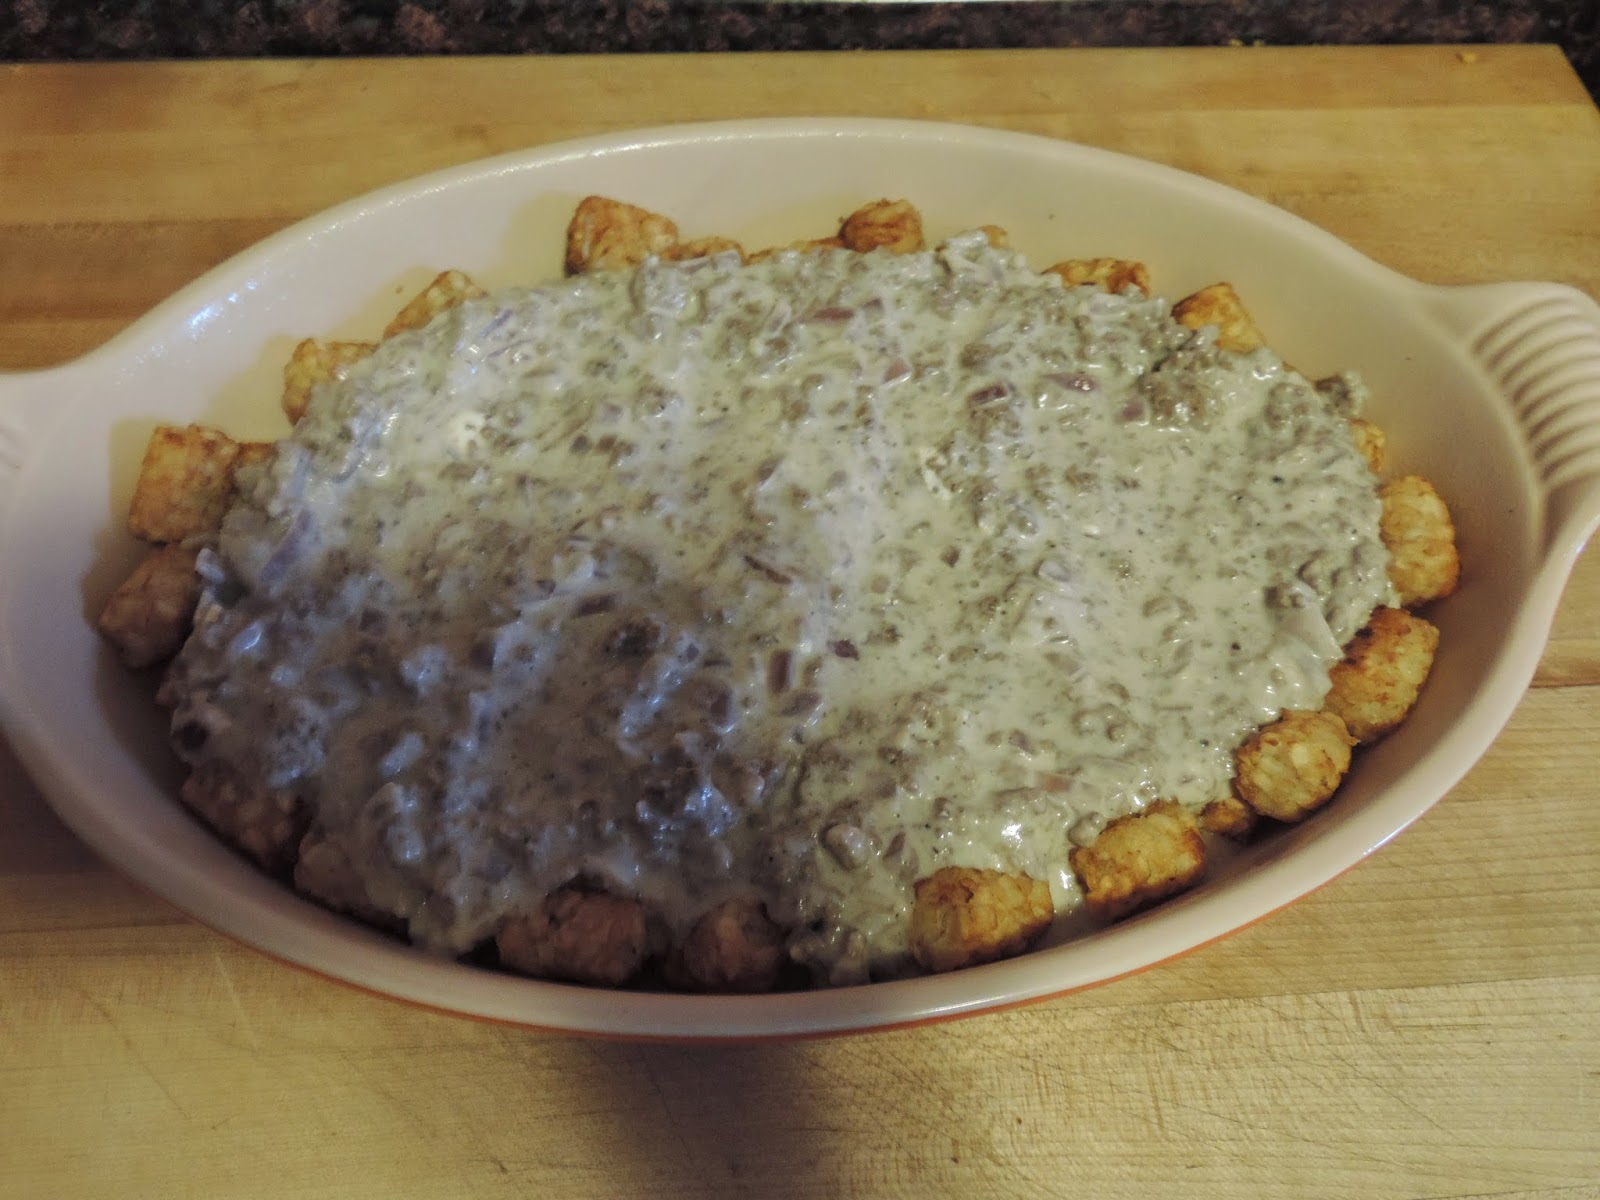 The stroganoff sauce poured over the tater tots.